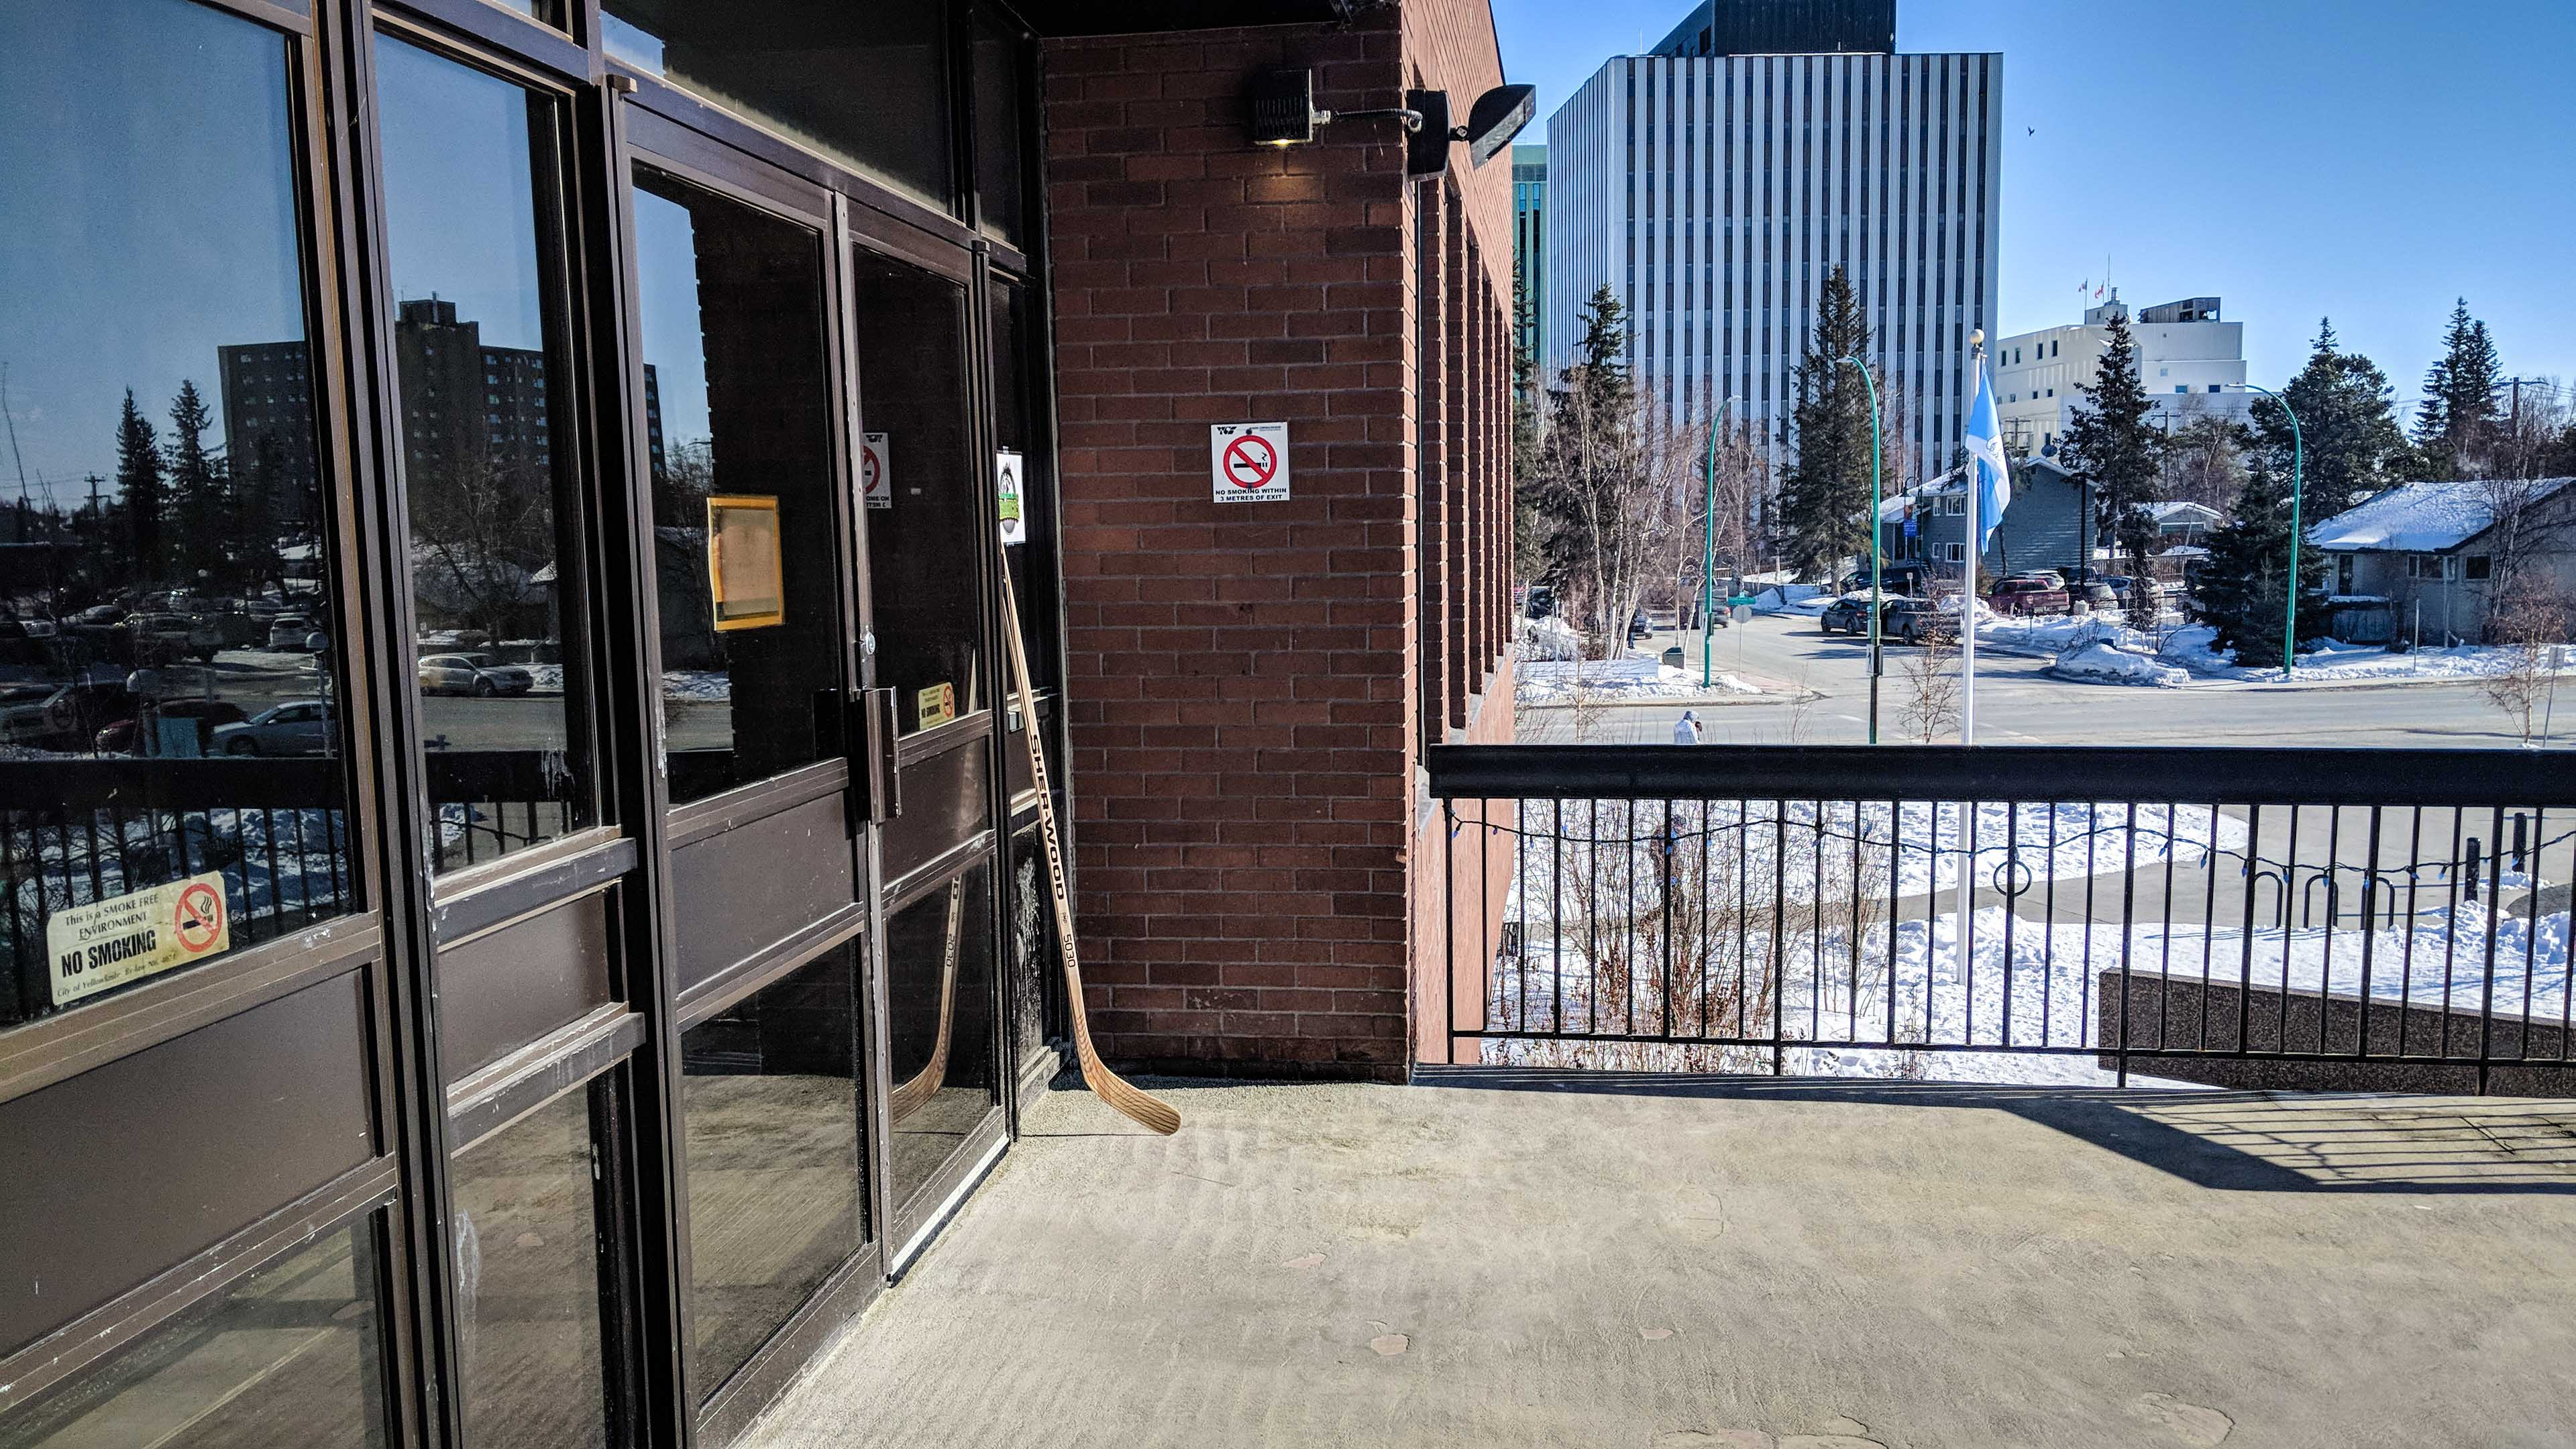 A hockey stick rests outside the doors of Yellowknife's City Hall on Tuesday, April 10, 2018, in memory of those killed in the Humboldt Broncos bus disaster